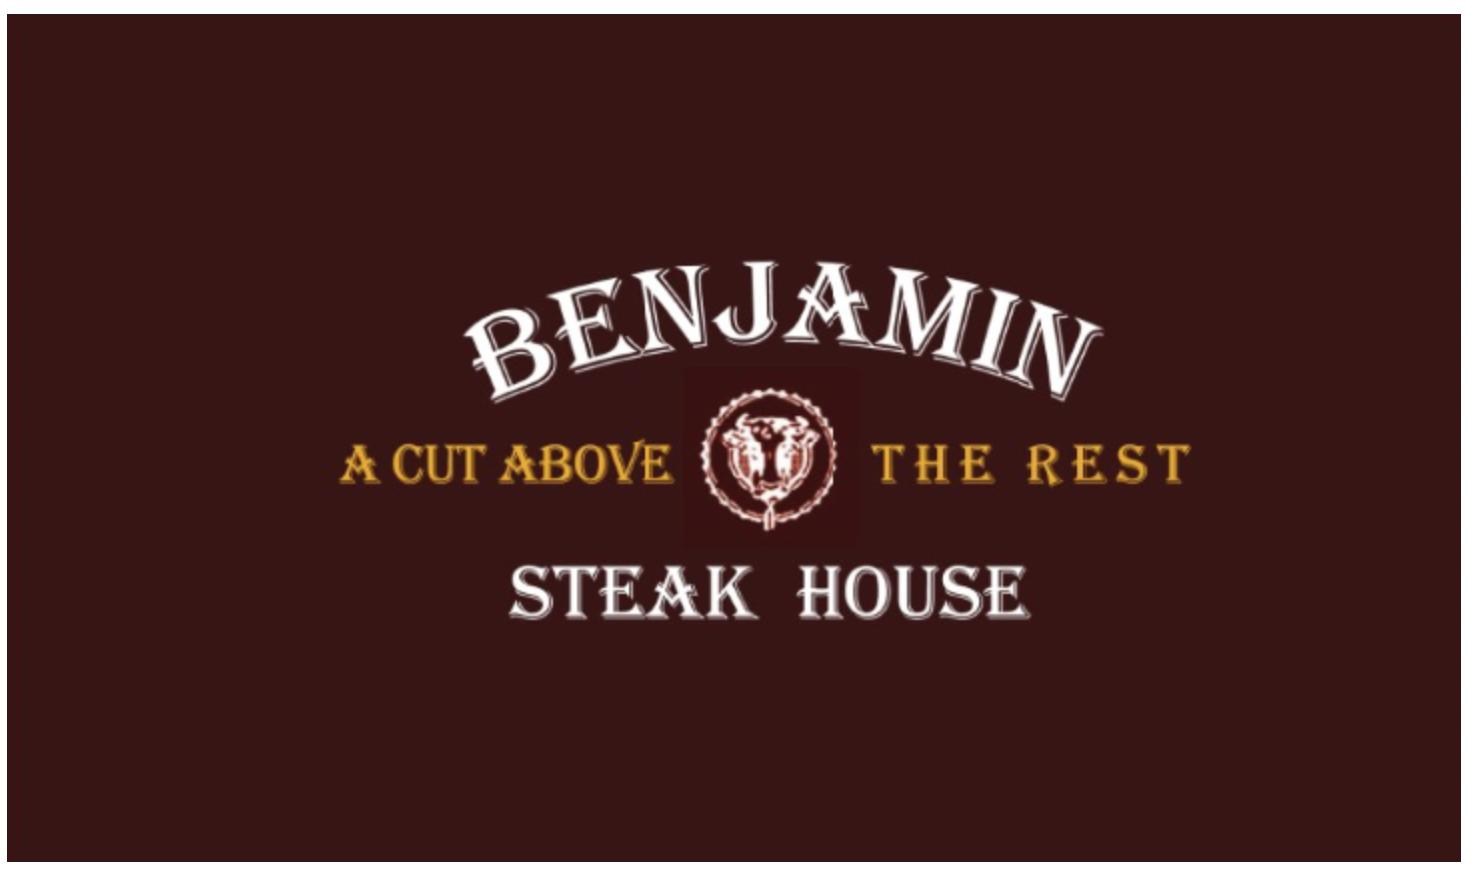 Benjamin's Steak House